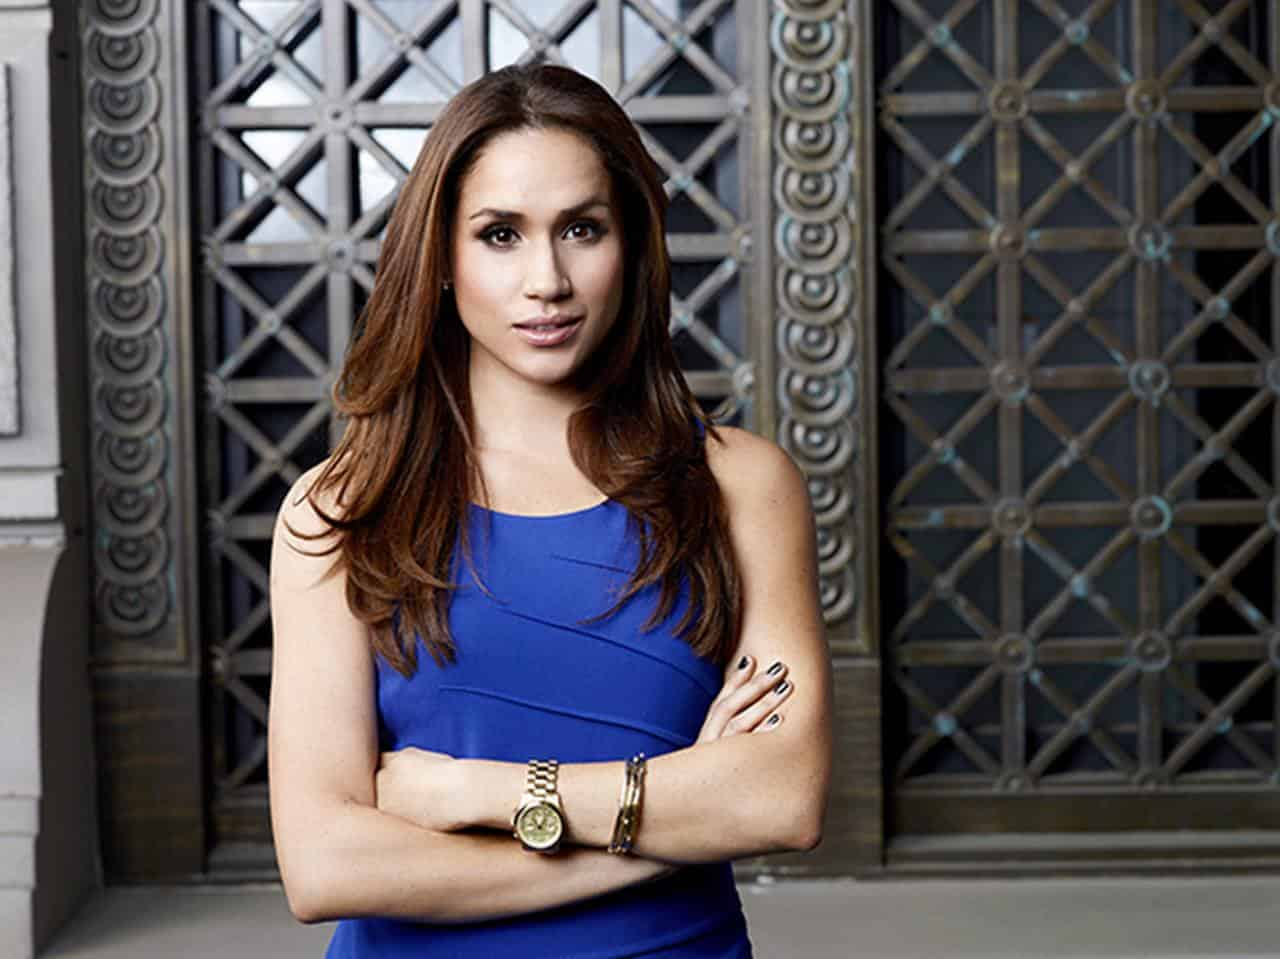 Meghan Markle's Interview and Her Watch Collections